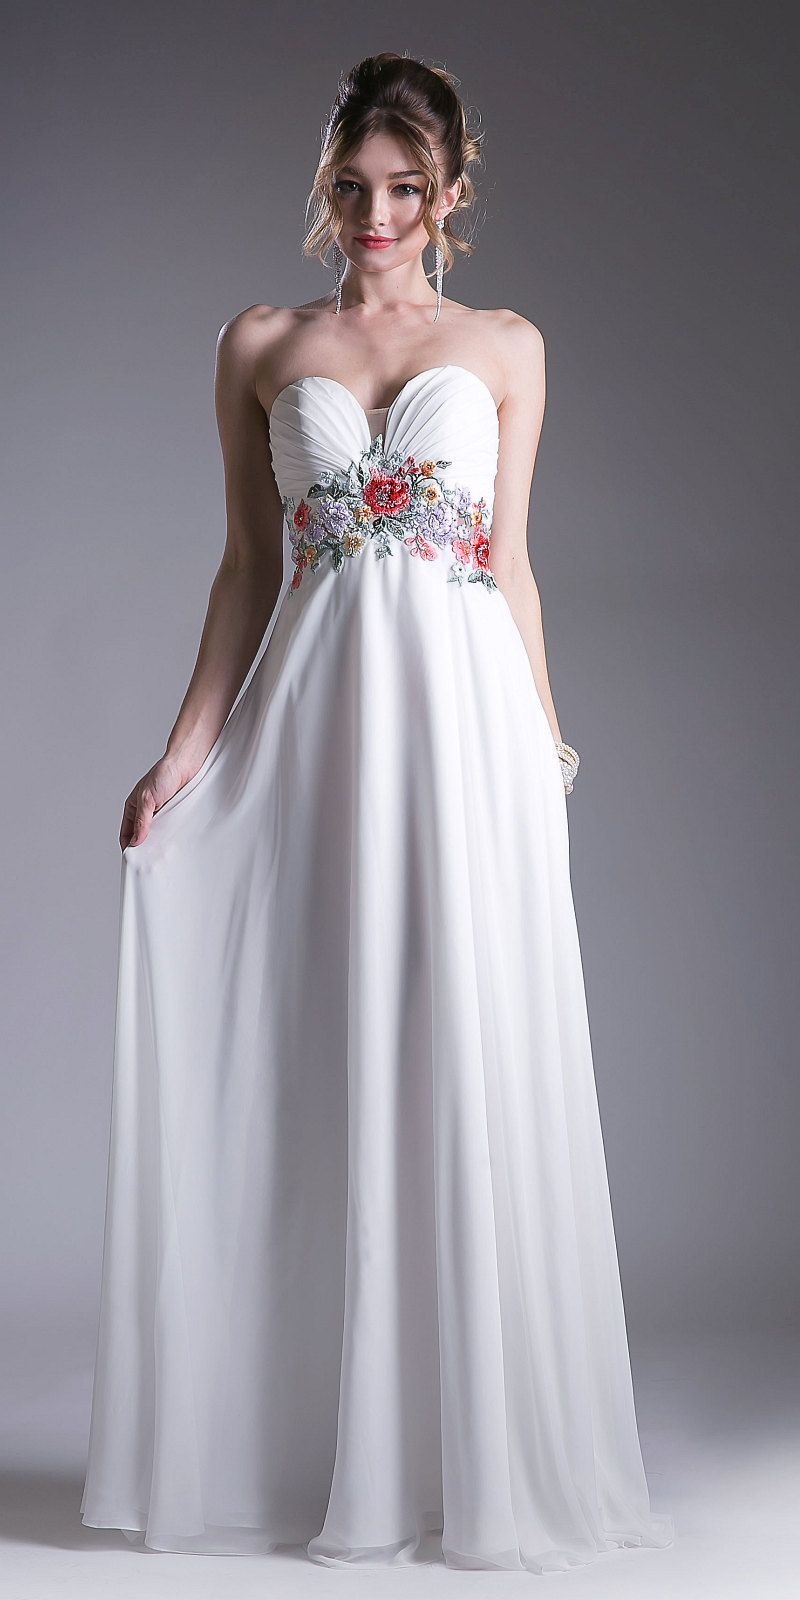 e18f585b7e Cinderella Divine HW13 Off White Empire Waist Long Formal Dress ...